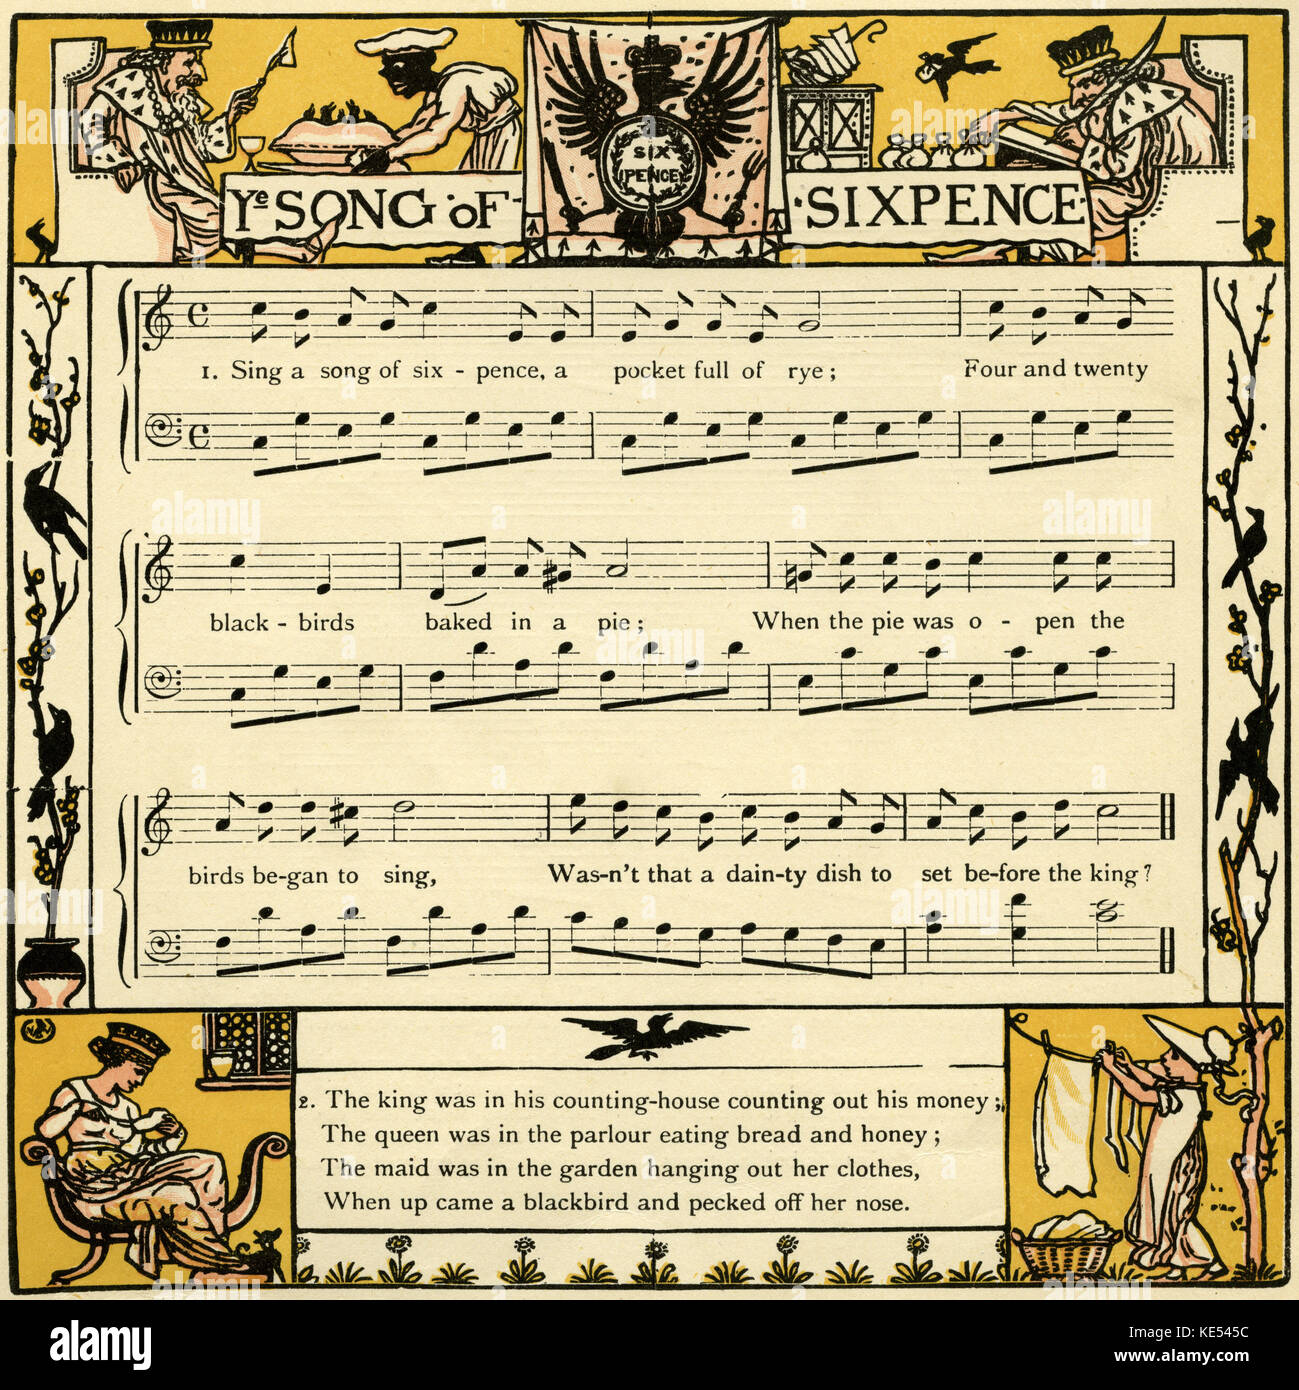 Song of sixpence,( Sing a song of sixpence, a pocket full of rye) nursery rhyme score, illustration (1877) by Walter - Stock Image